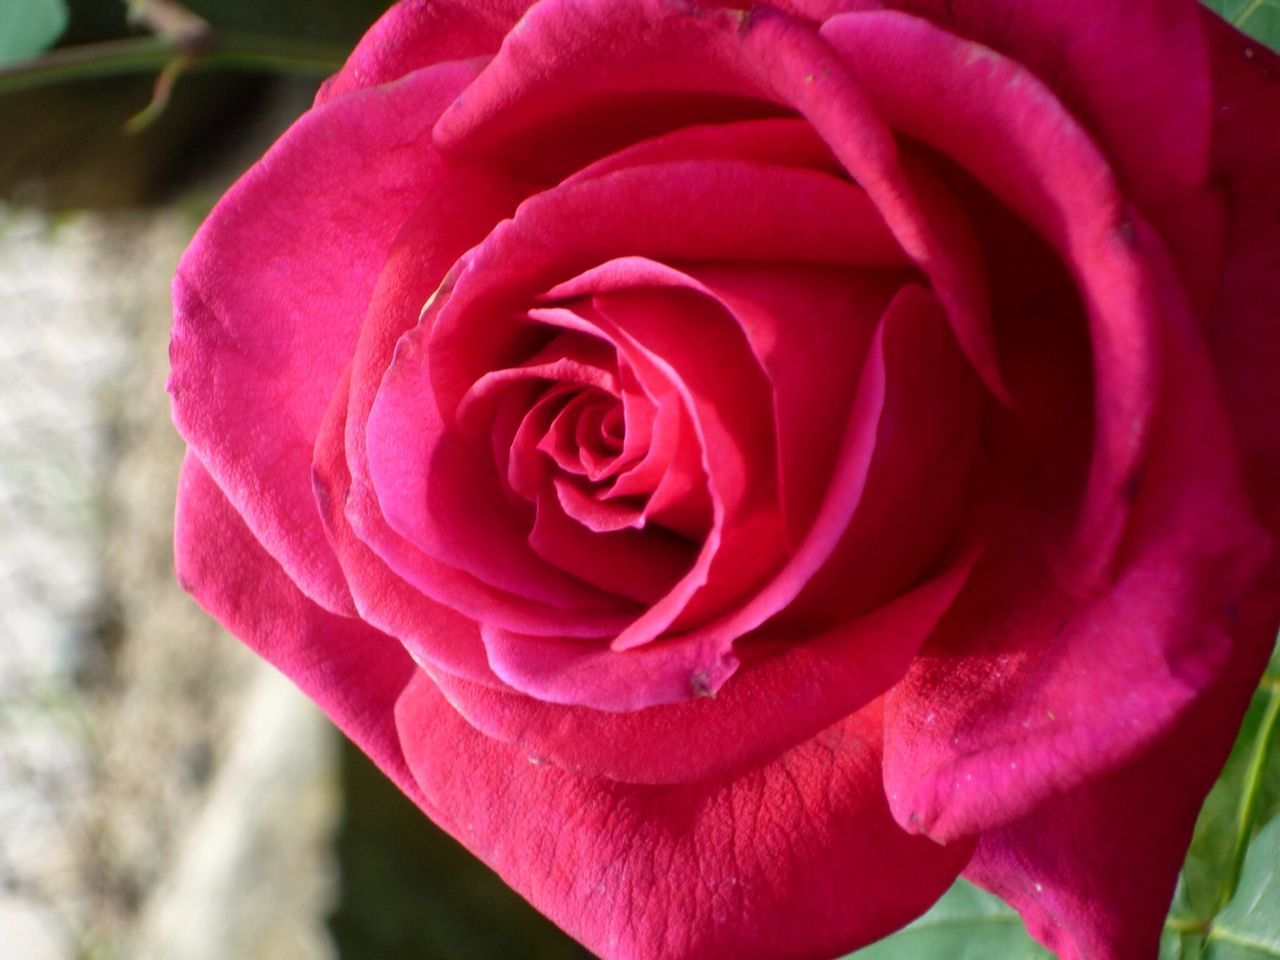 Close-up of dark pink rose